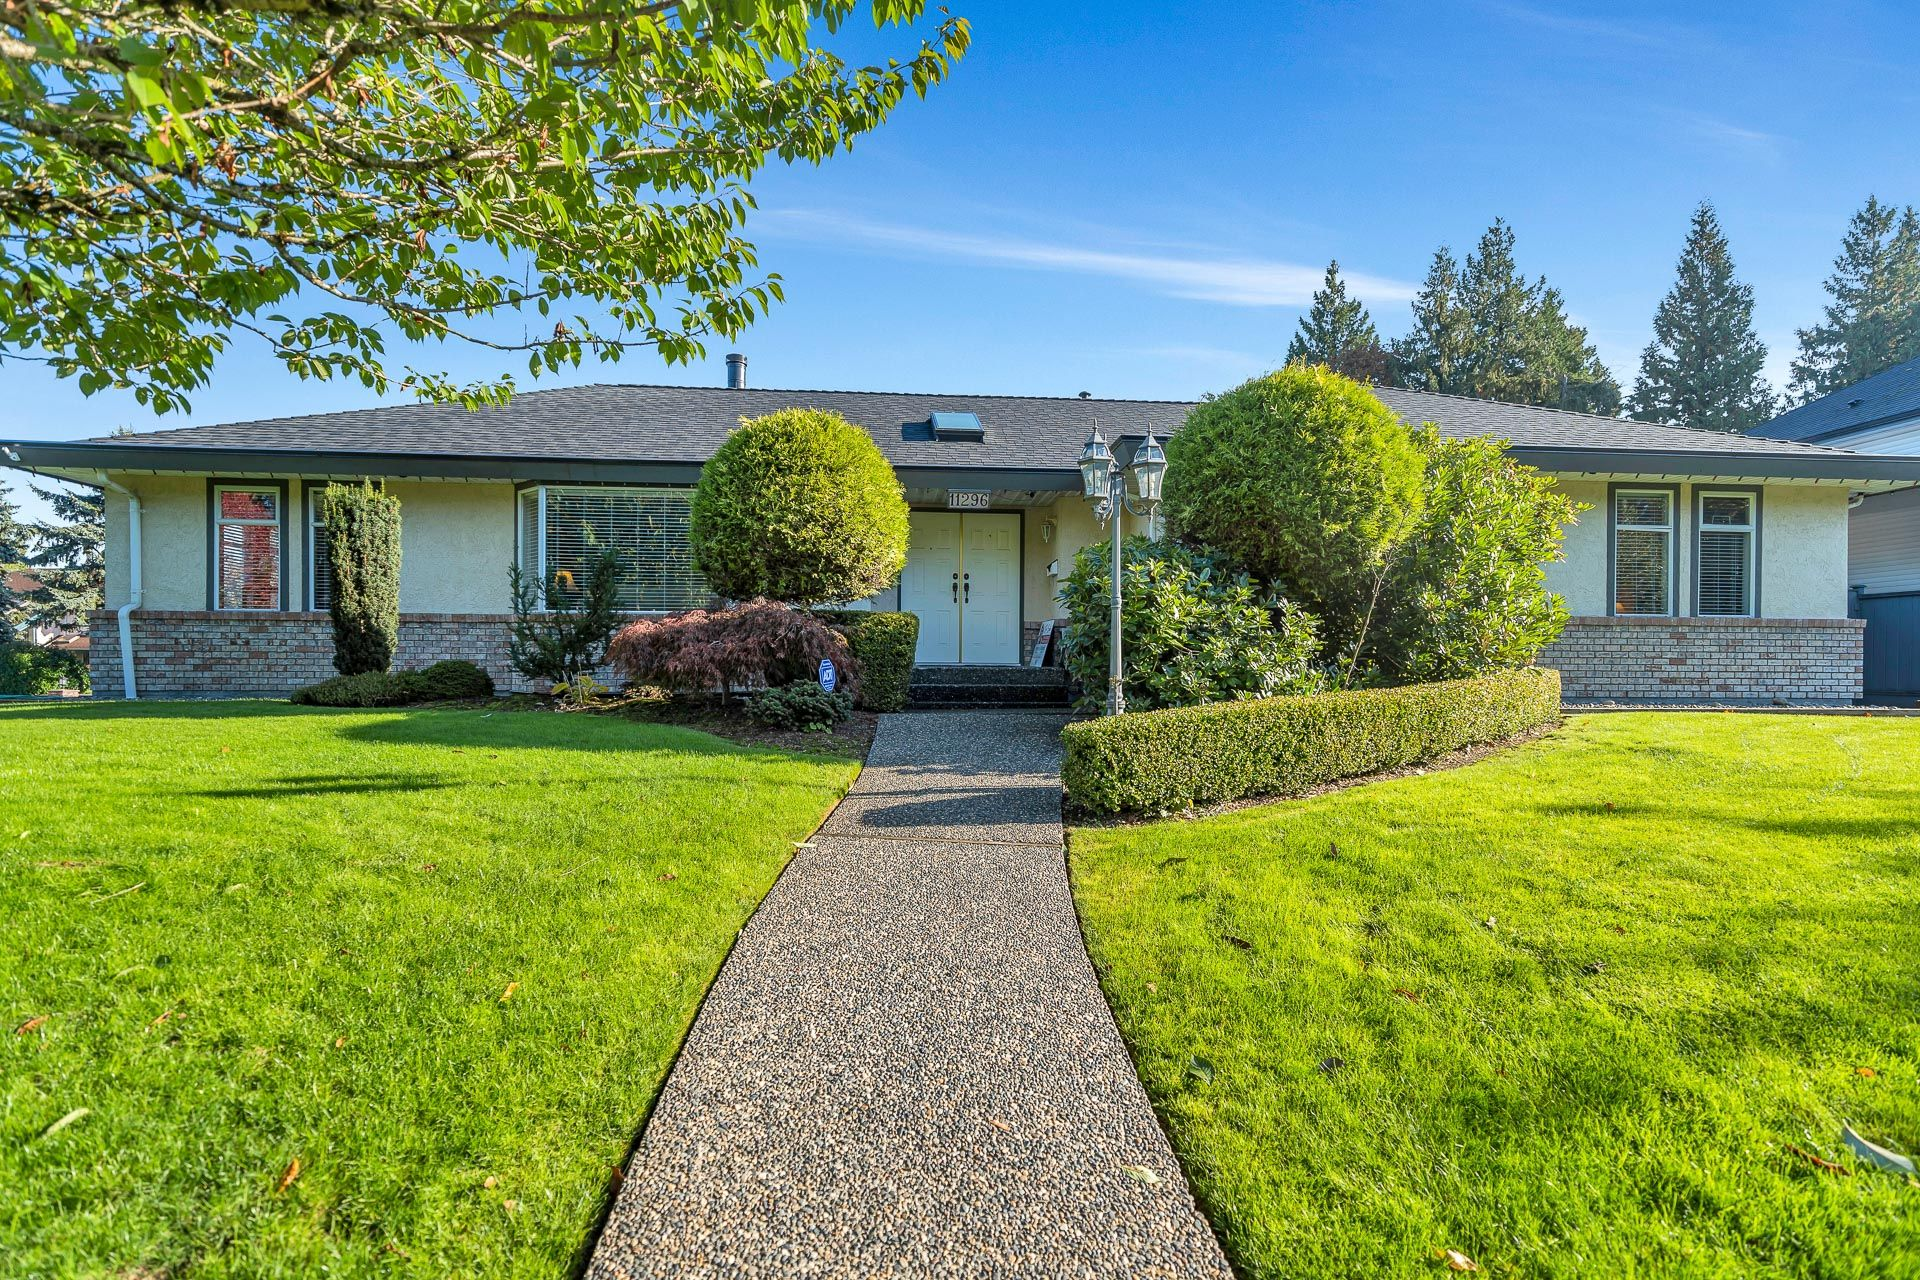 Main Photo: 11296 153A STREET in Surrey: Fraser Heights House for sale (North Surrey)  : MLS®# R2512149